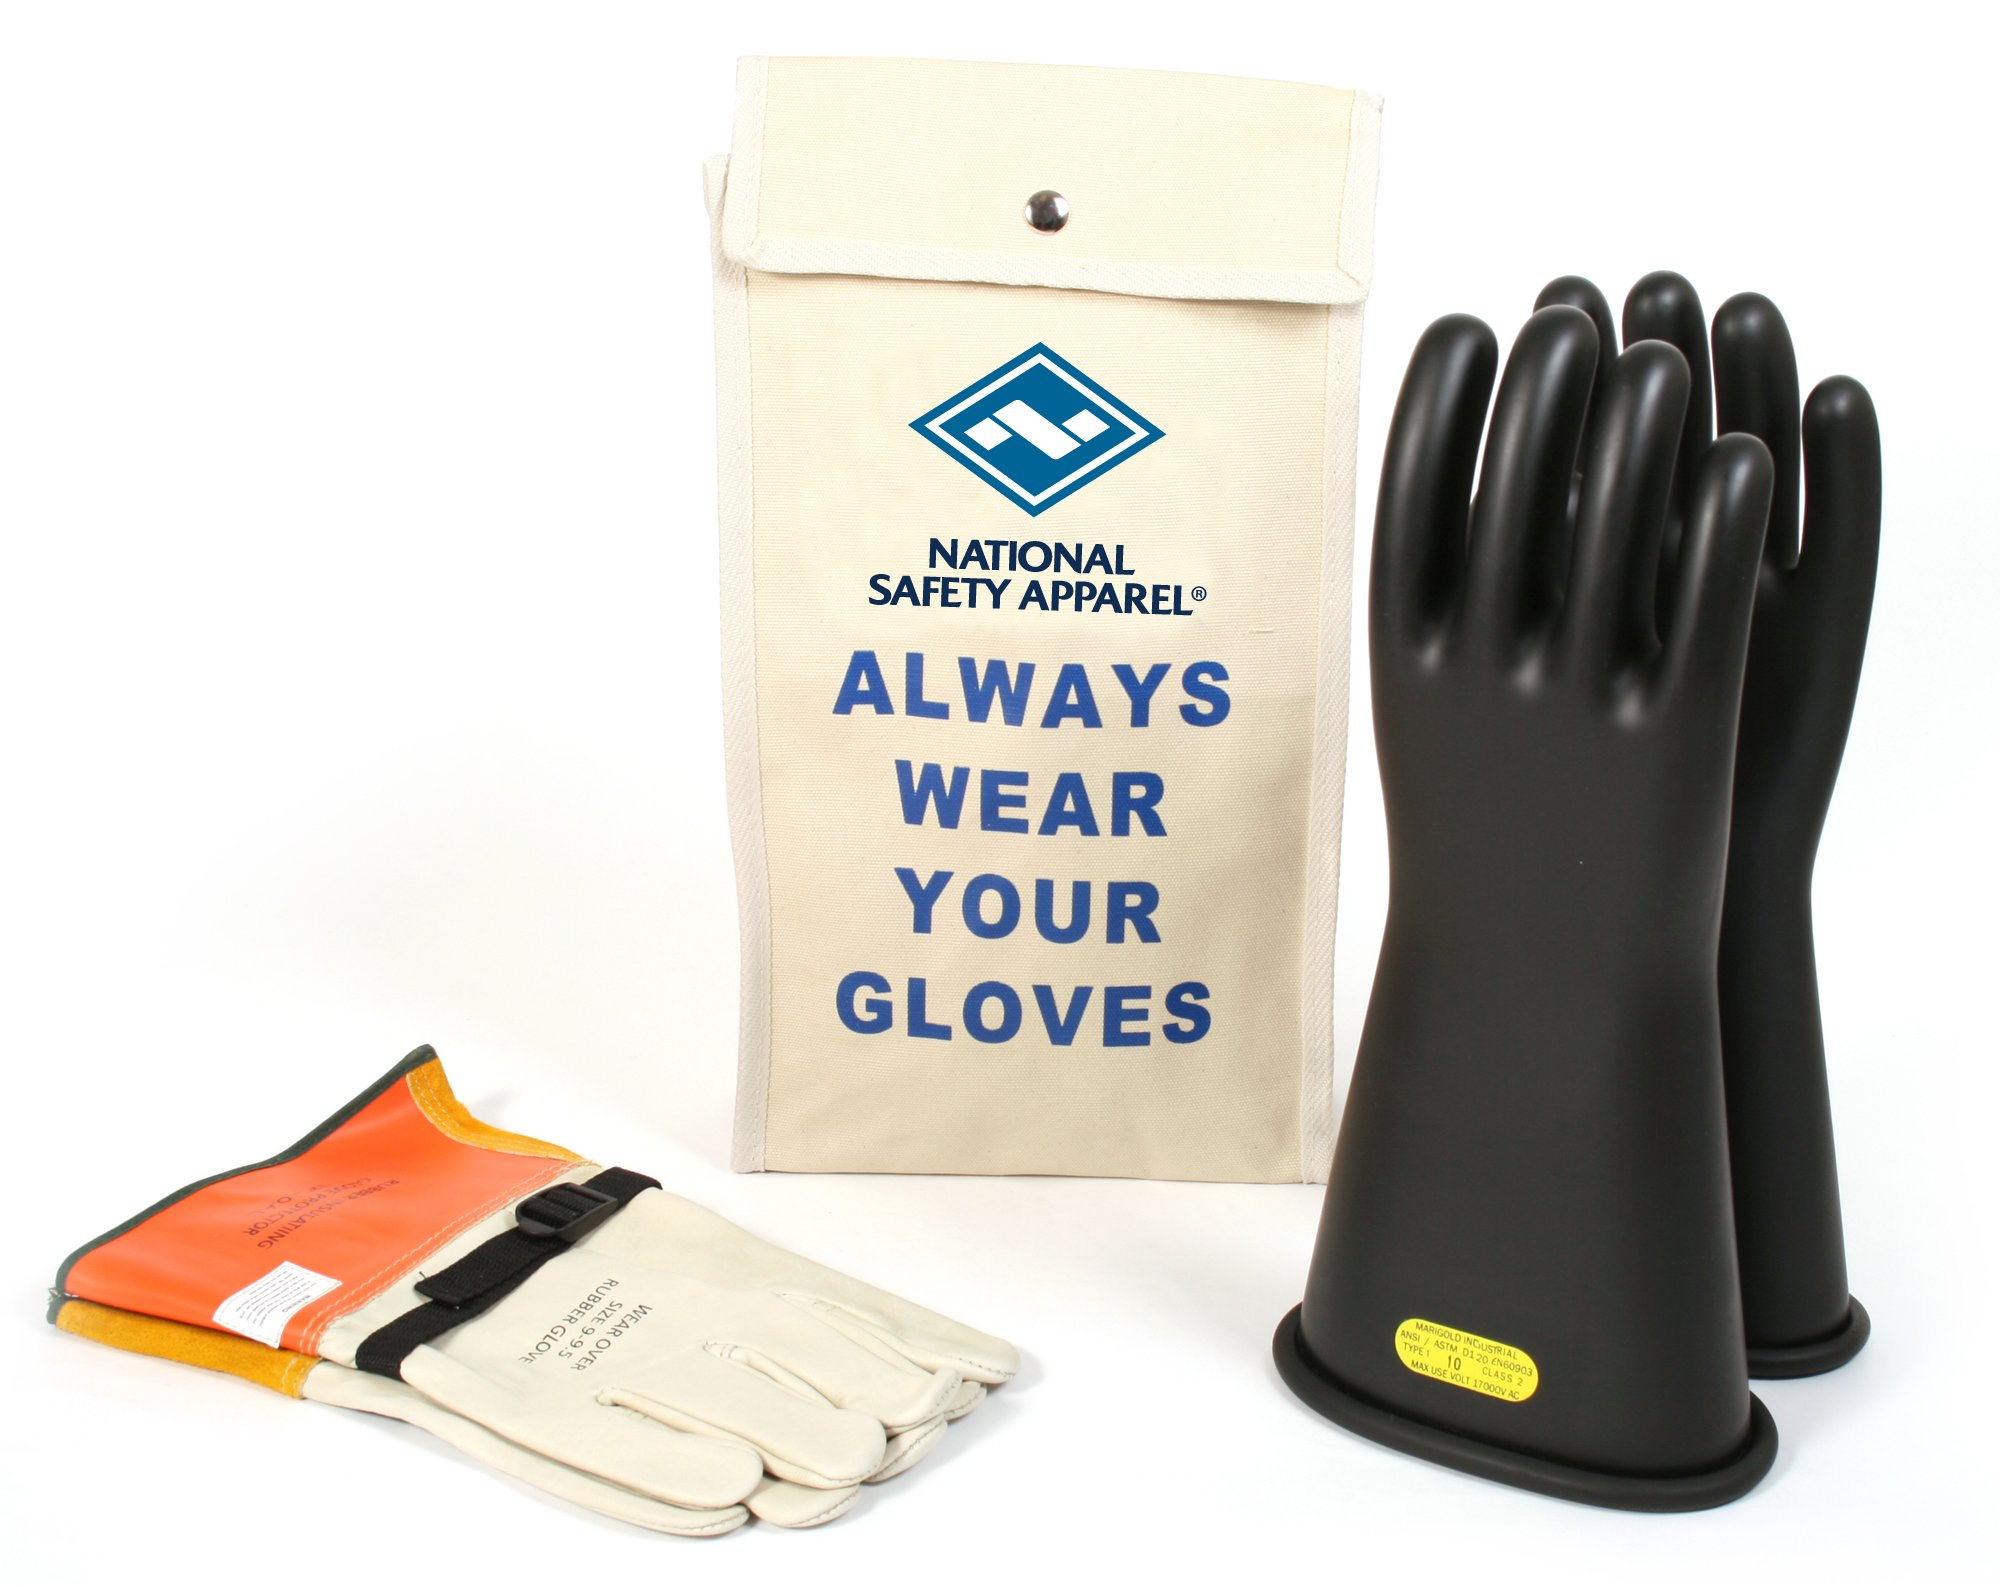 National Safety Apparel Class 2 Black Rubber Voltage Insulating Glove Kit with Leather Protectors, Max. Use Voltage 17,000V AC/ 25,500V DC (KITGC211)